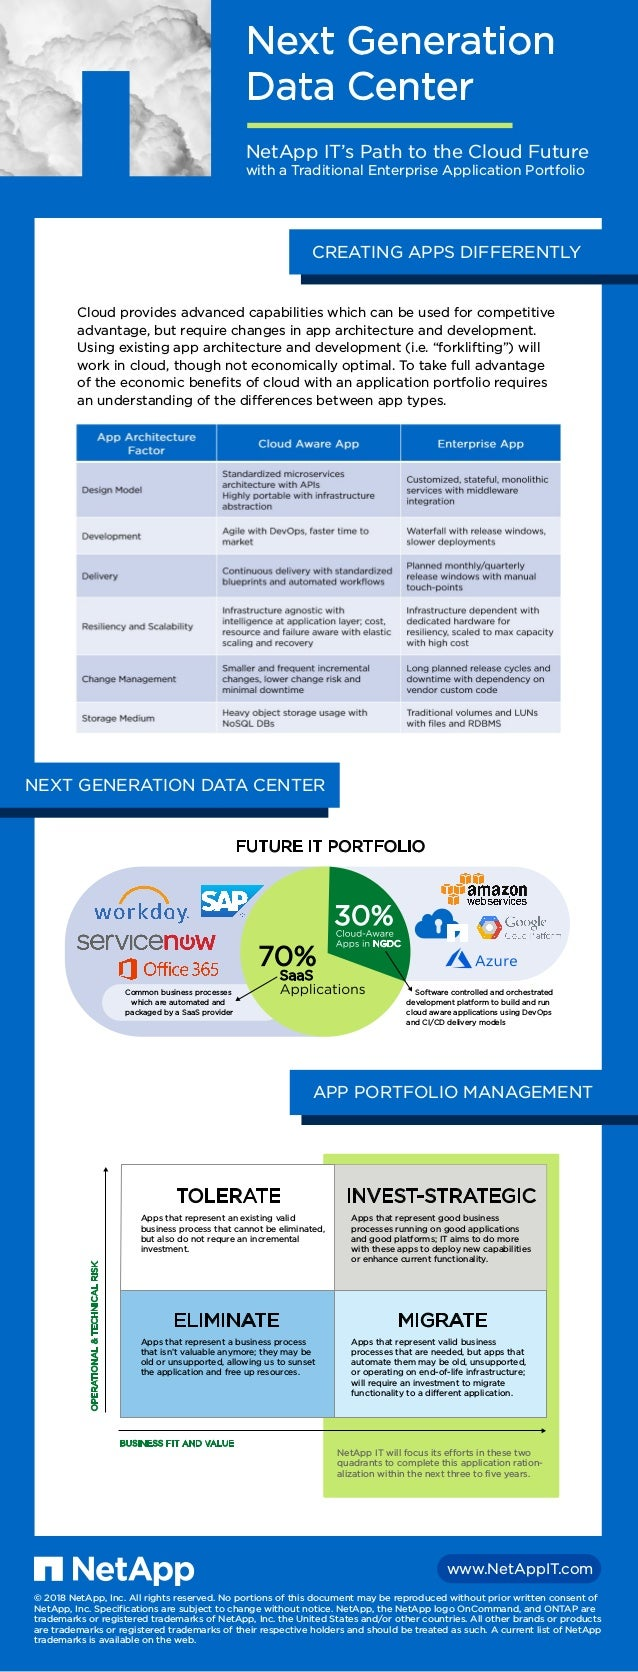 www.NetAppIT.com NetApp IT will focus its efforts in these two quadrants to complete this application ration- alization wi...